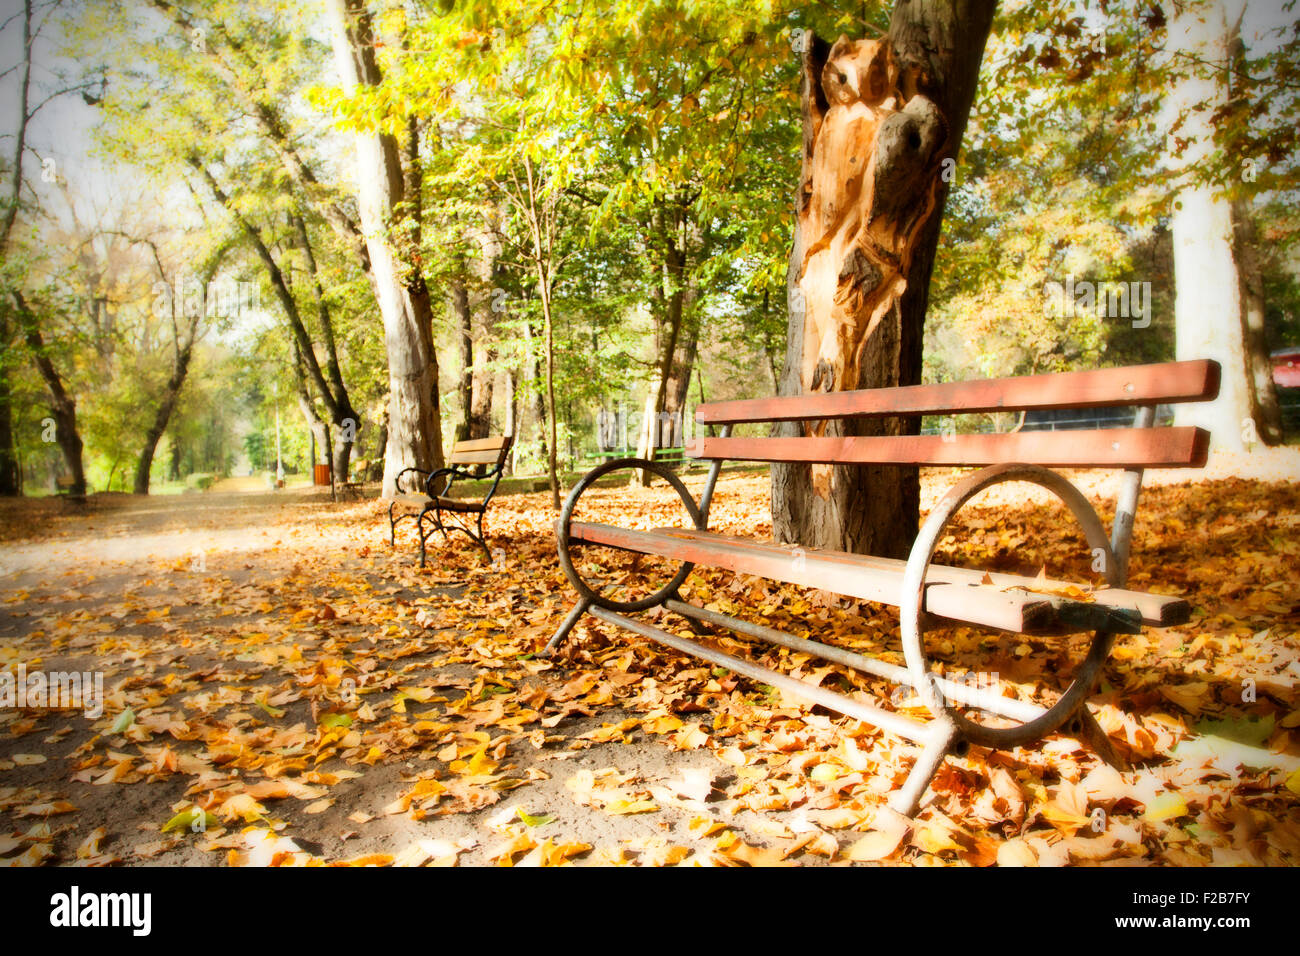 Wooden Bench In Autumn Park Vintage Photo Stock Photo